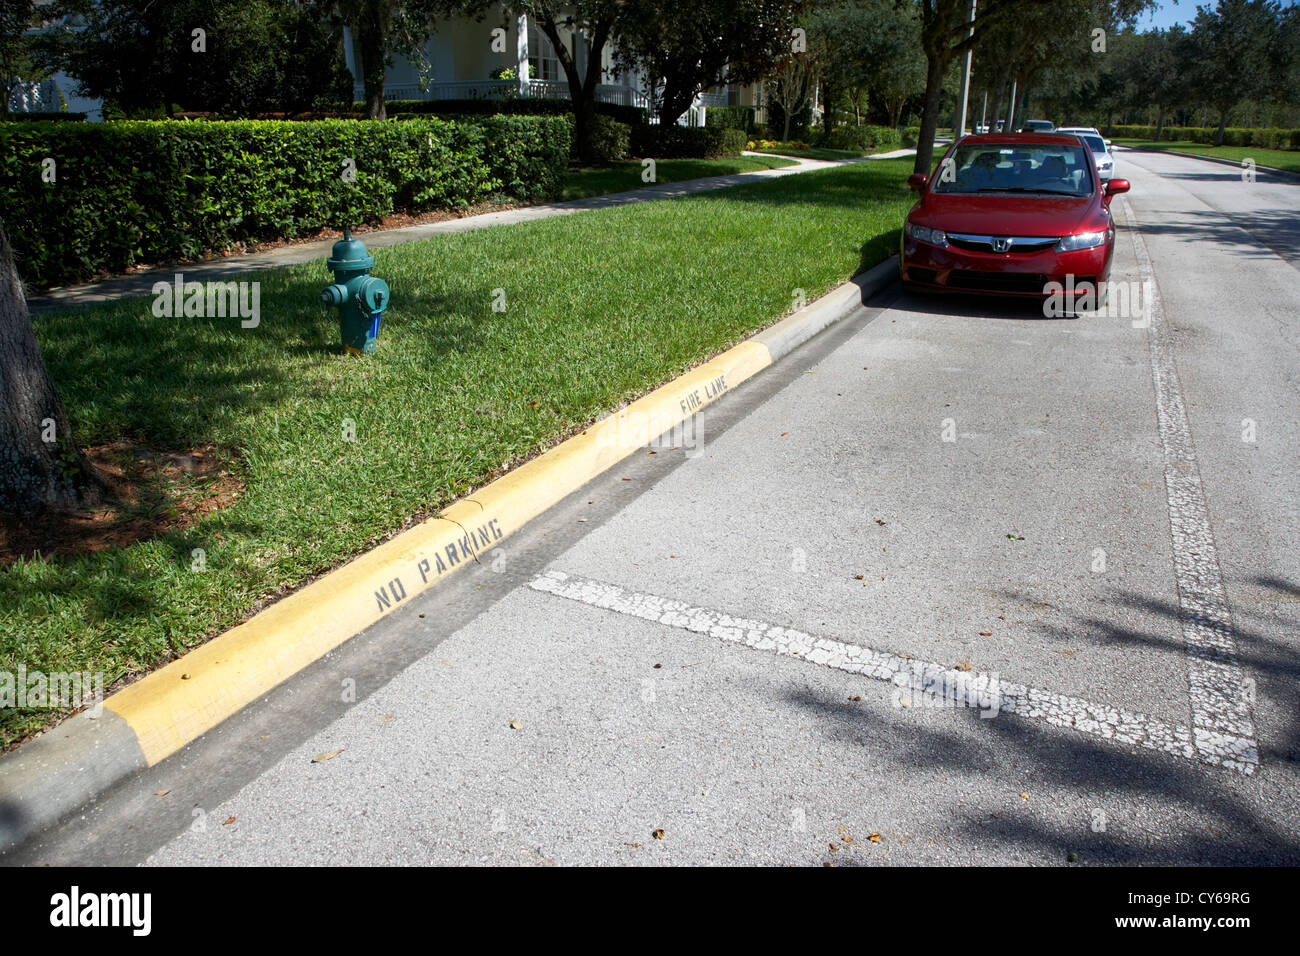 fire hydrant no parking curb in residential area of celebration florida usa - Stock Image